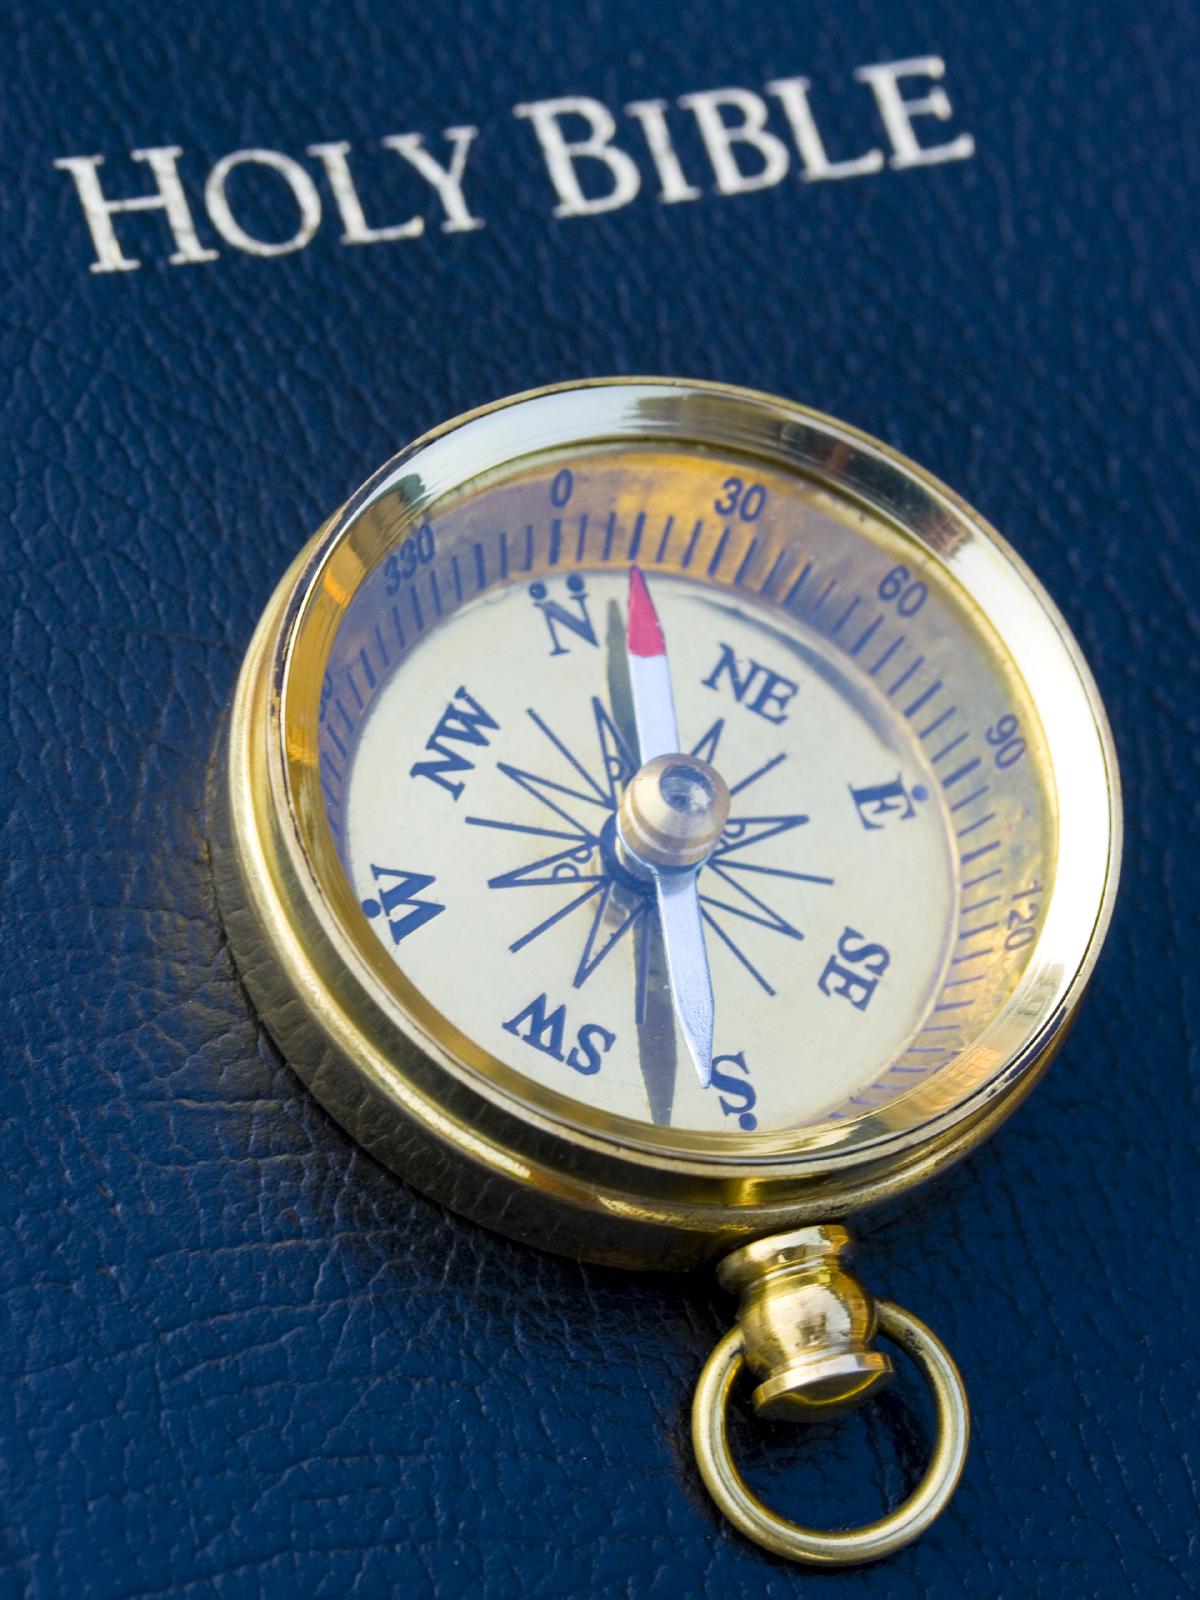 Compass on Bible